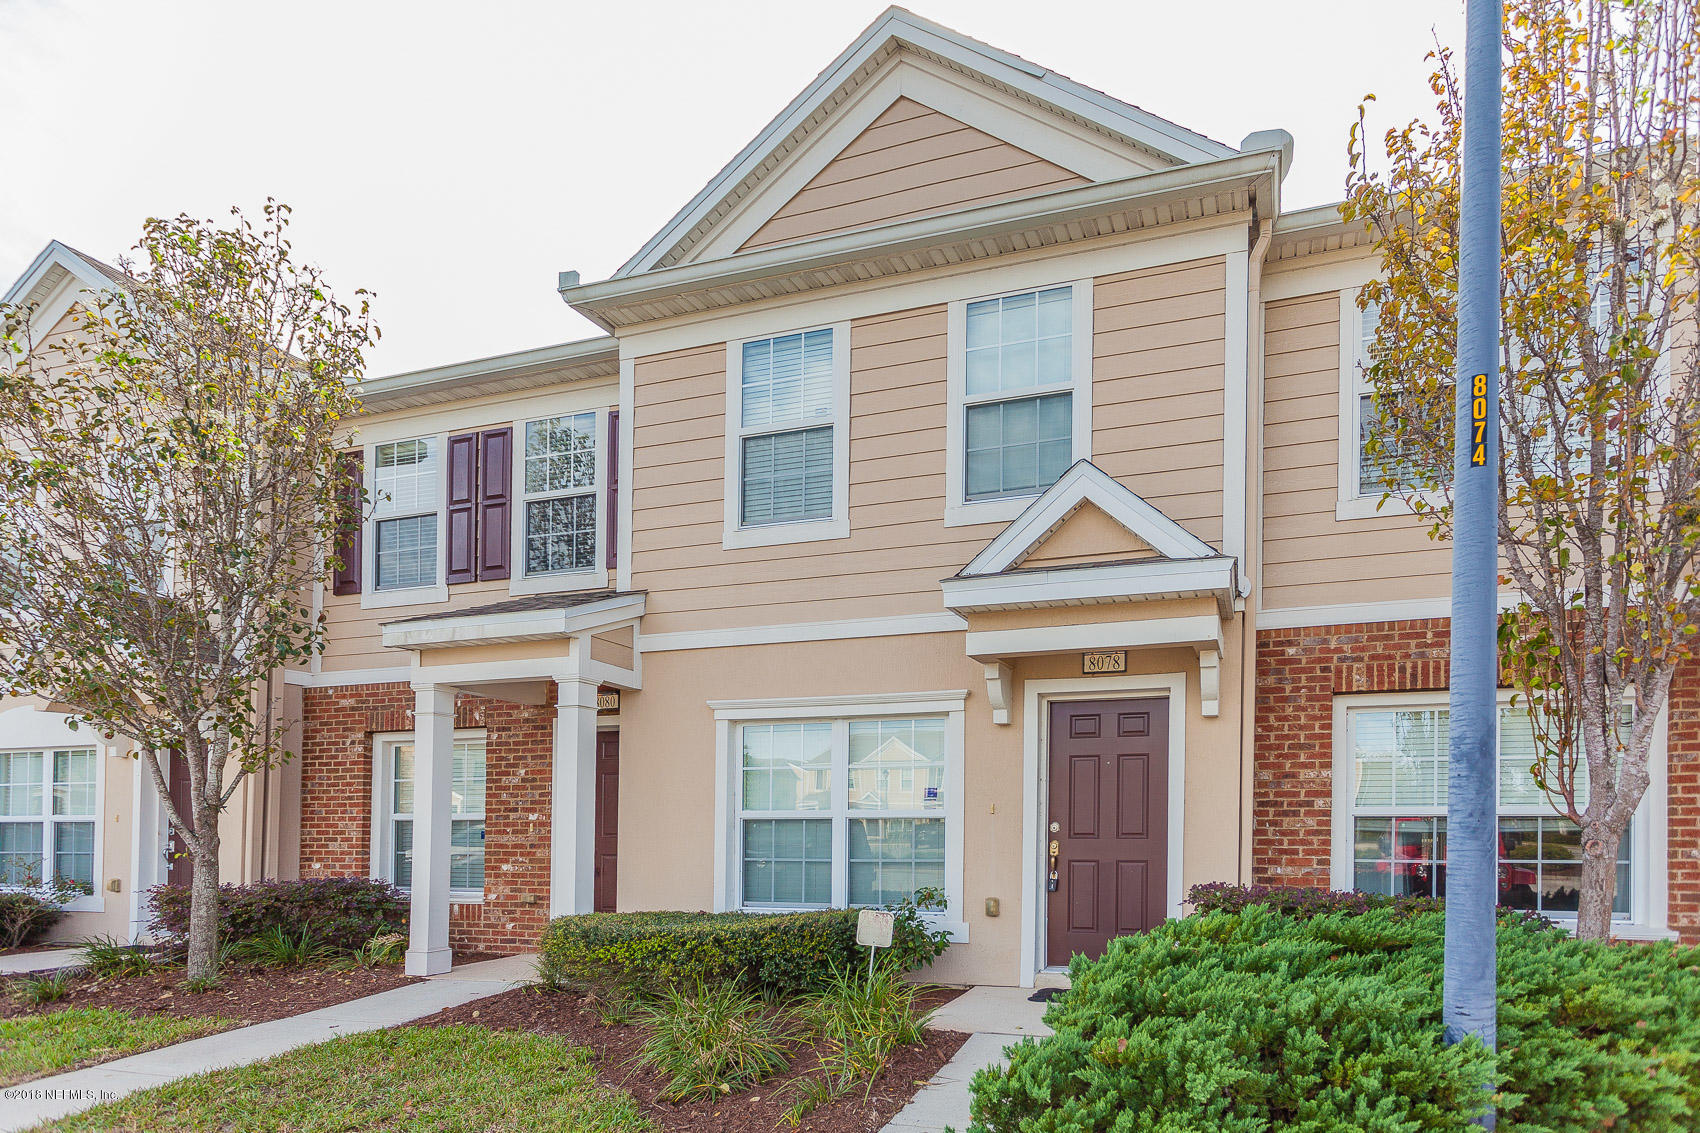 8078 SUMMER COVE, JACKSONVILLE, FLORIDA 32256, 2 Bedrooms Bedrooms, ,2 BathroomsBathrooms,Residential - townhome,For sale,SUMMER COVE,965358